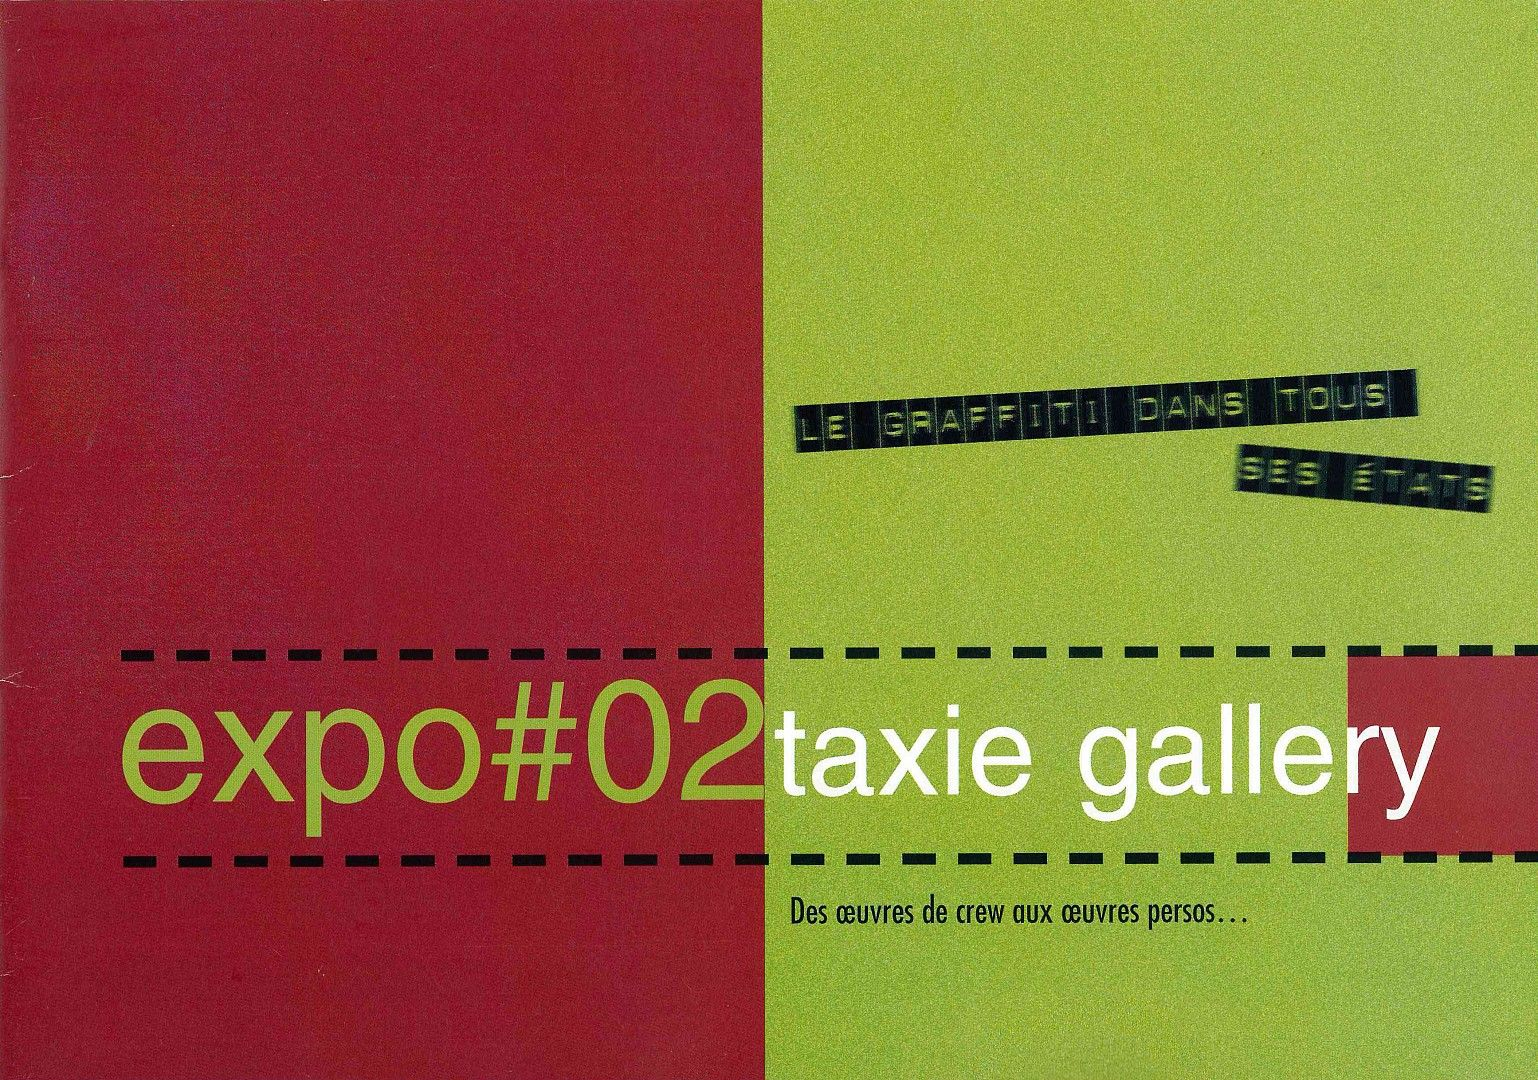 expo#02 taxie gallery